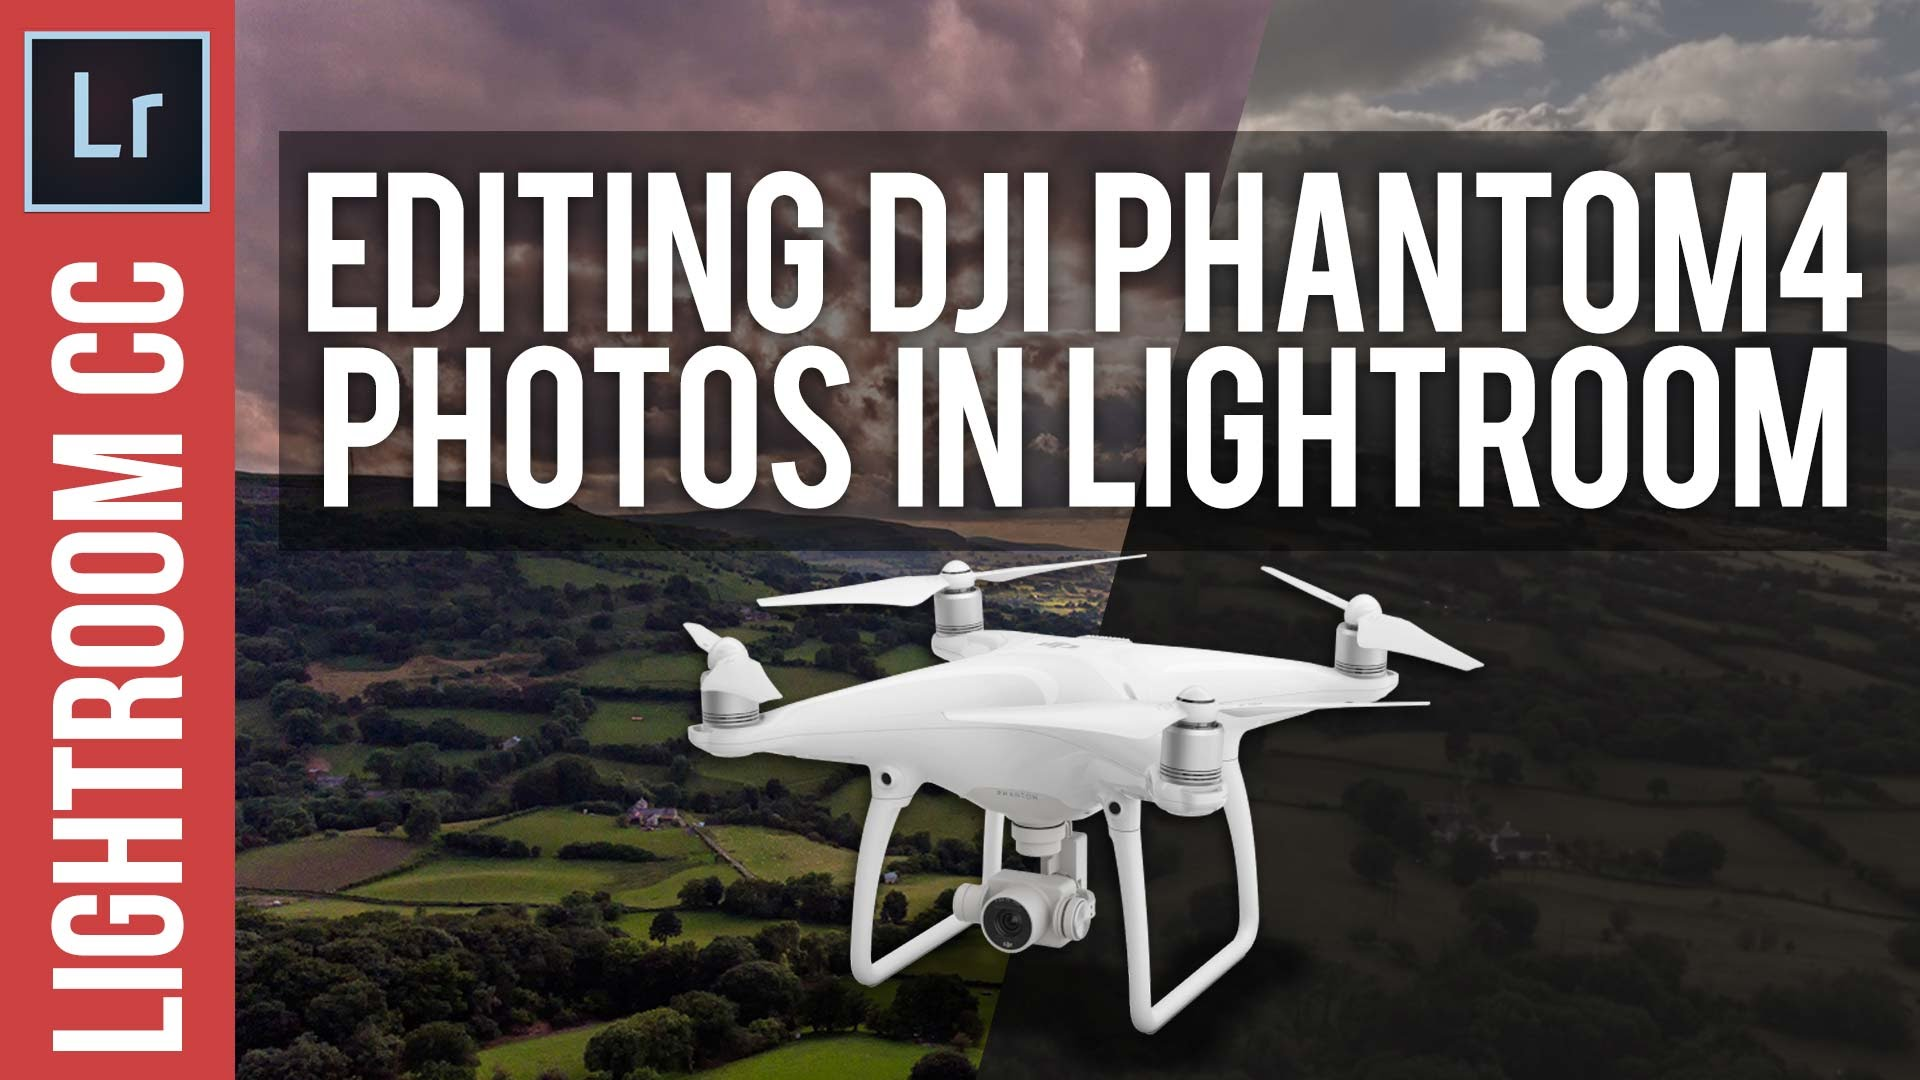 Processing / Editing DJI Phantom 4 Photo's in Adobe Lightroom